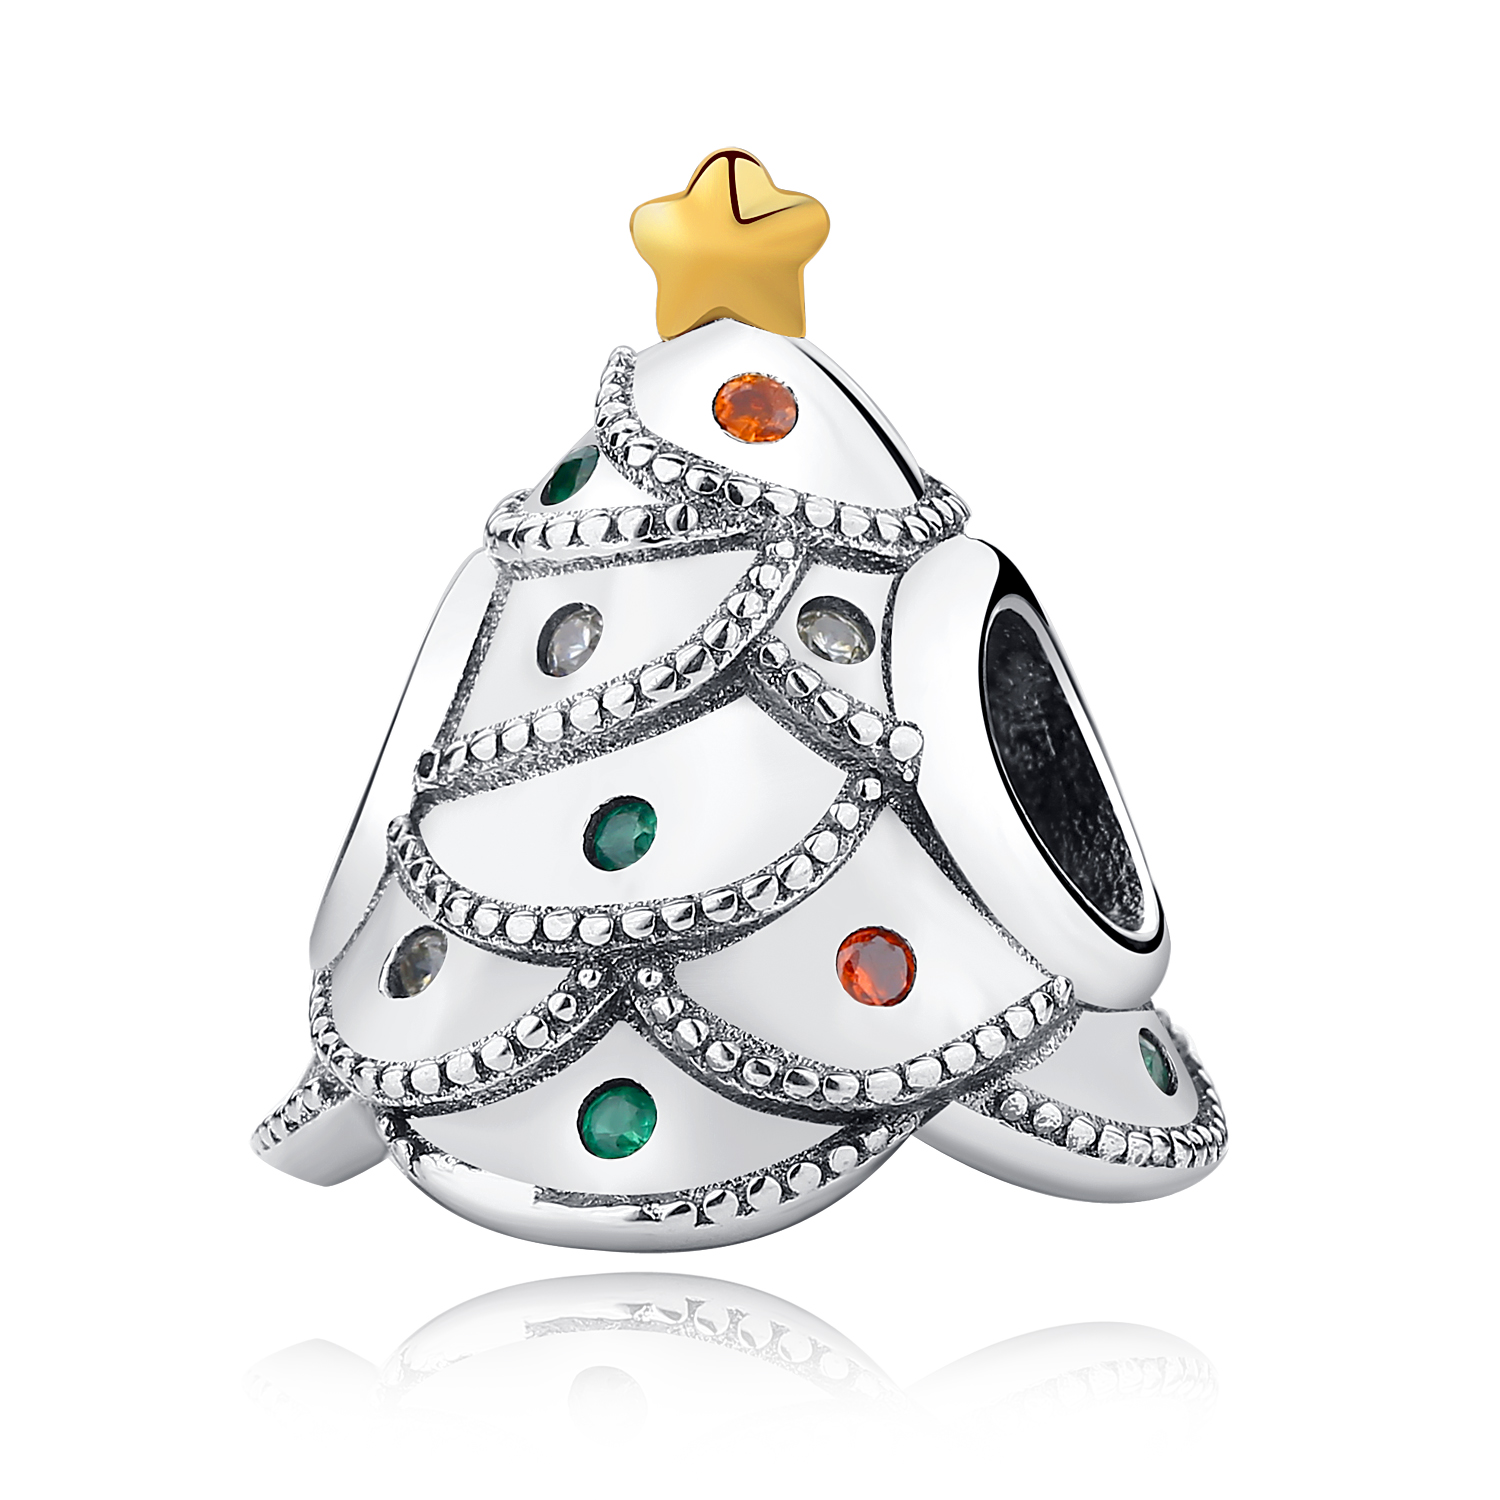 Aliexpress HOT Real 925 Sterling Silver Christmas Gift Present Charm Beads Fit Original WST Bracelet Authentic Jewelry